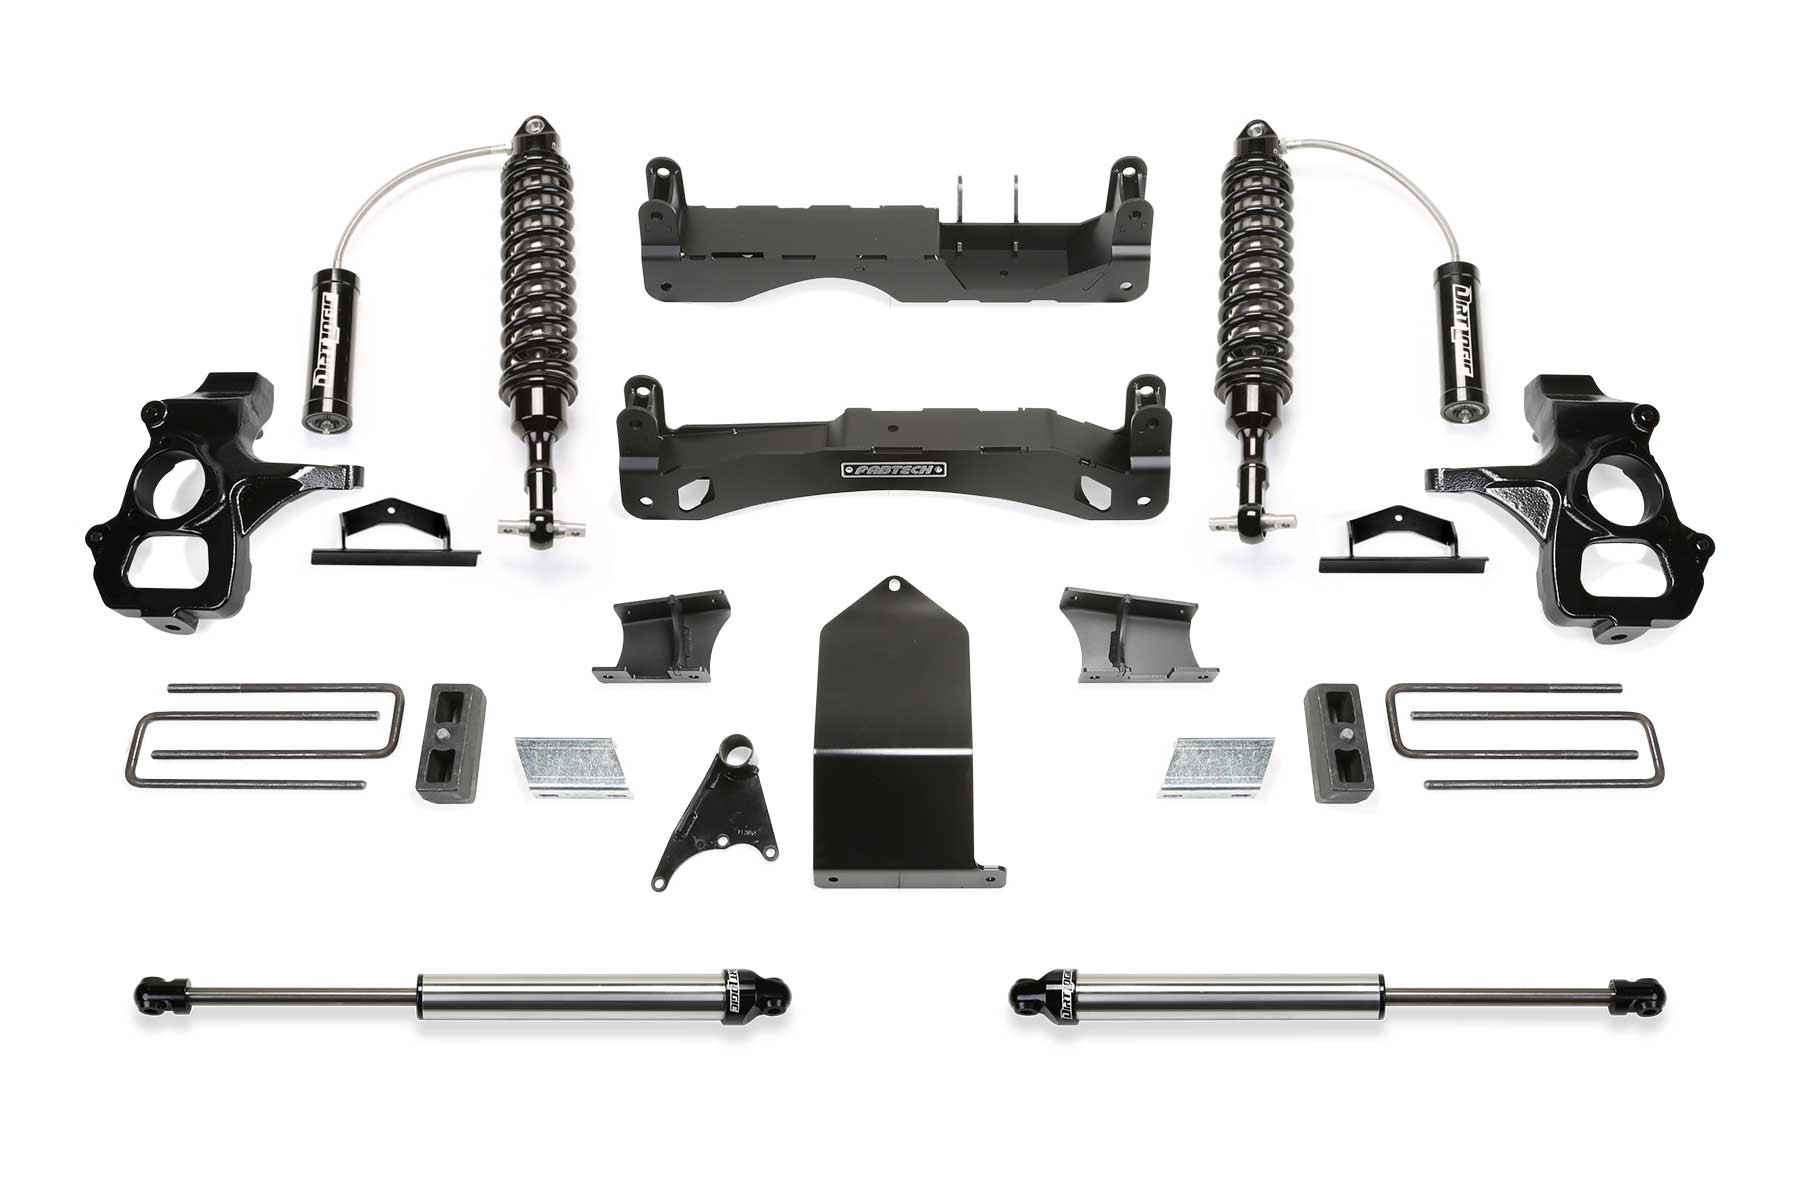 FABTECH 2007-18 GM C/K1500- 4″ PERFORMANCE SYSTEM W/ FRONT DIRT LOGIC 2.5 RESI COILOVERS & REAR DIRT LOGIC 2.25 SHOCKS